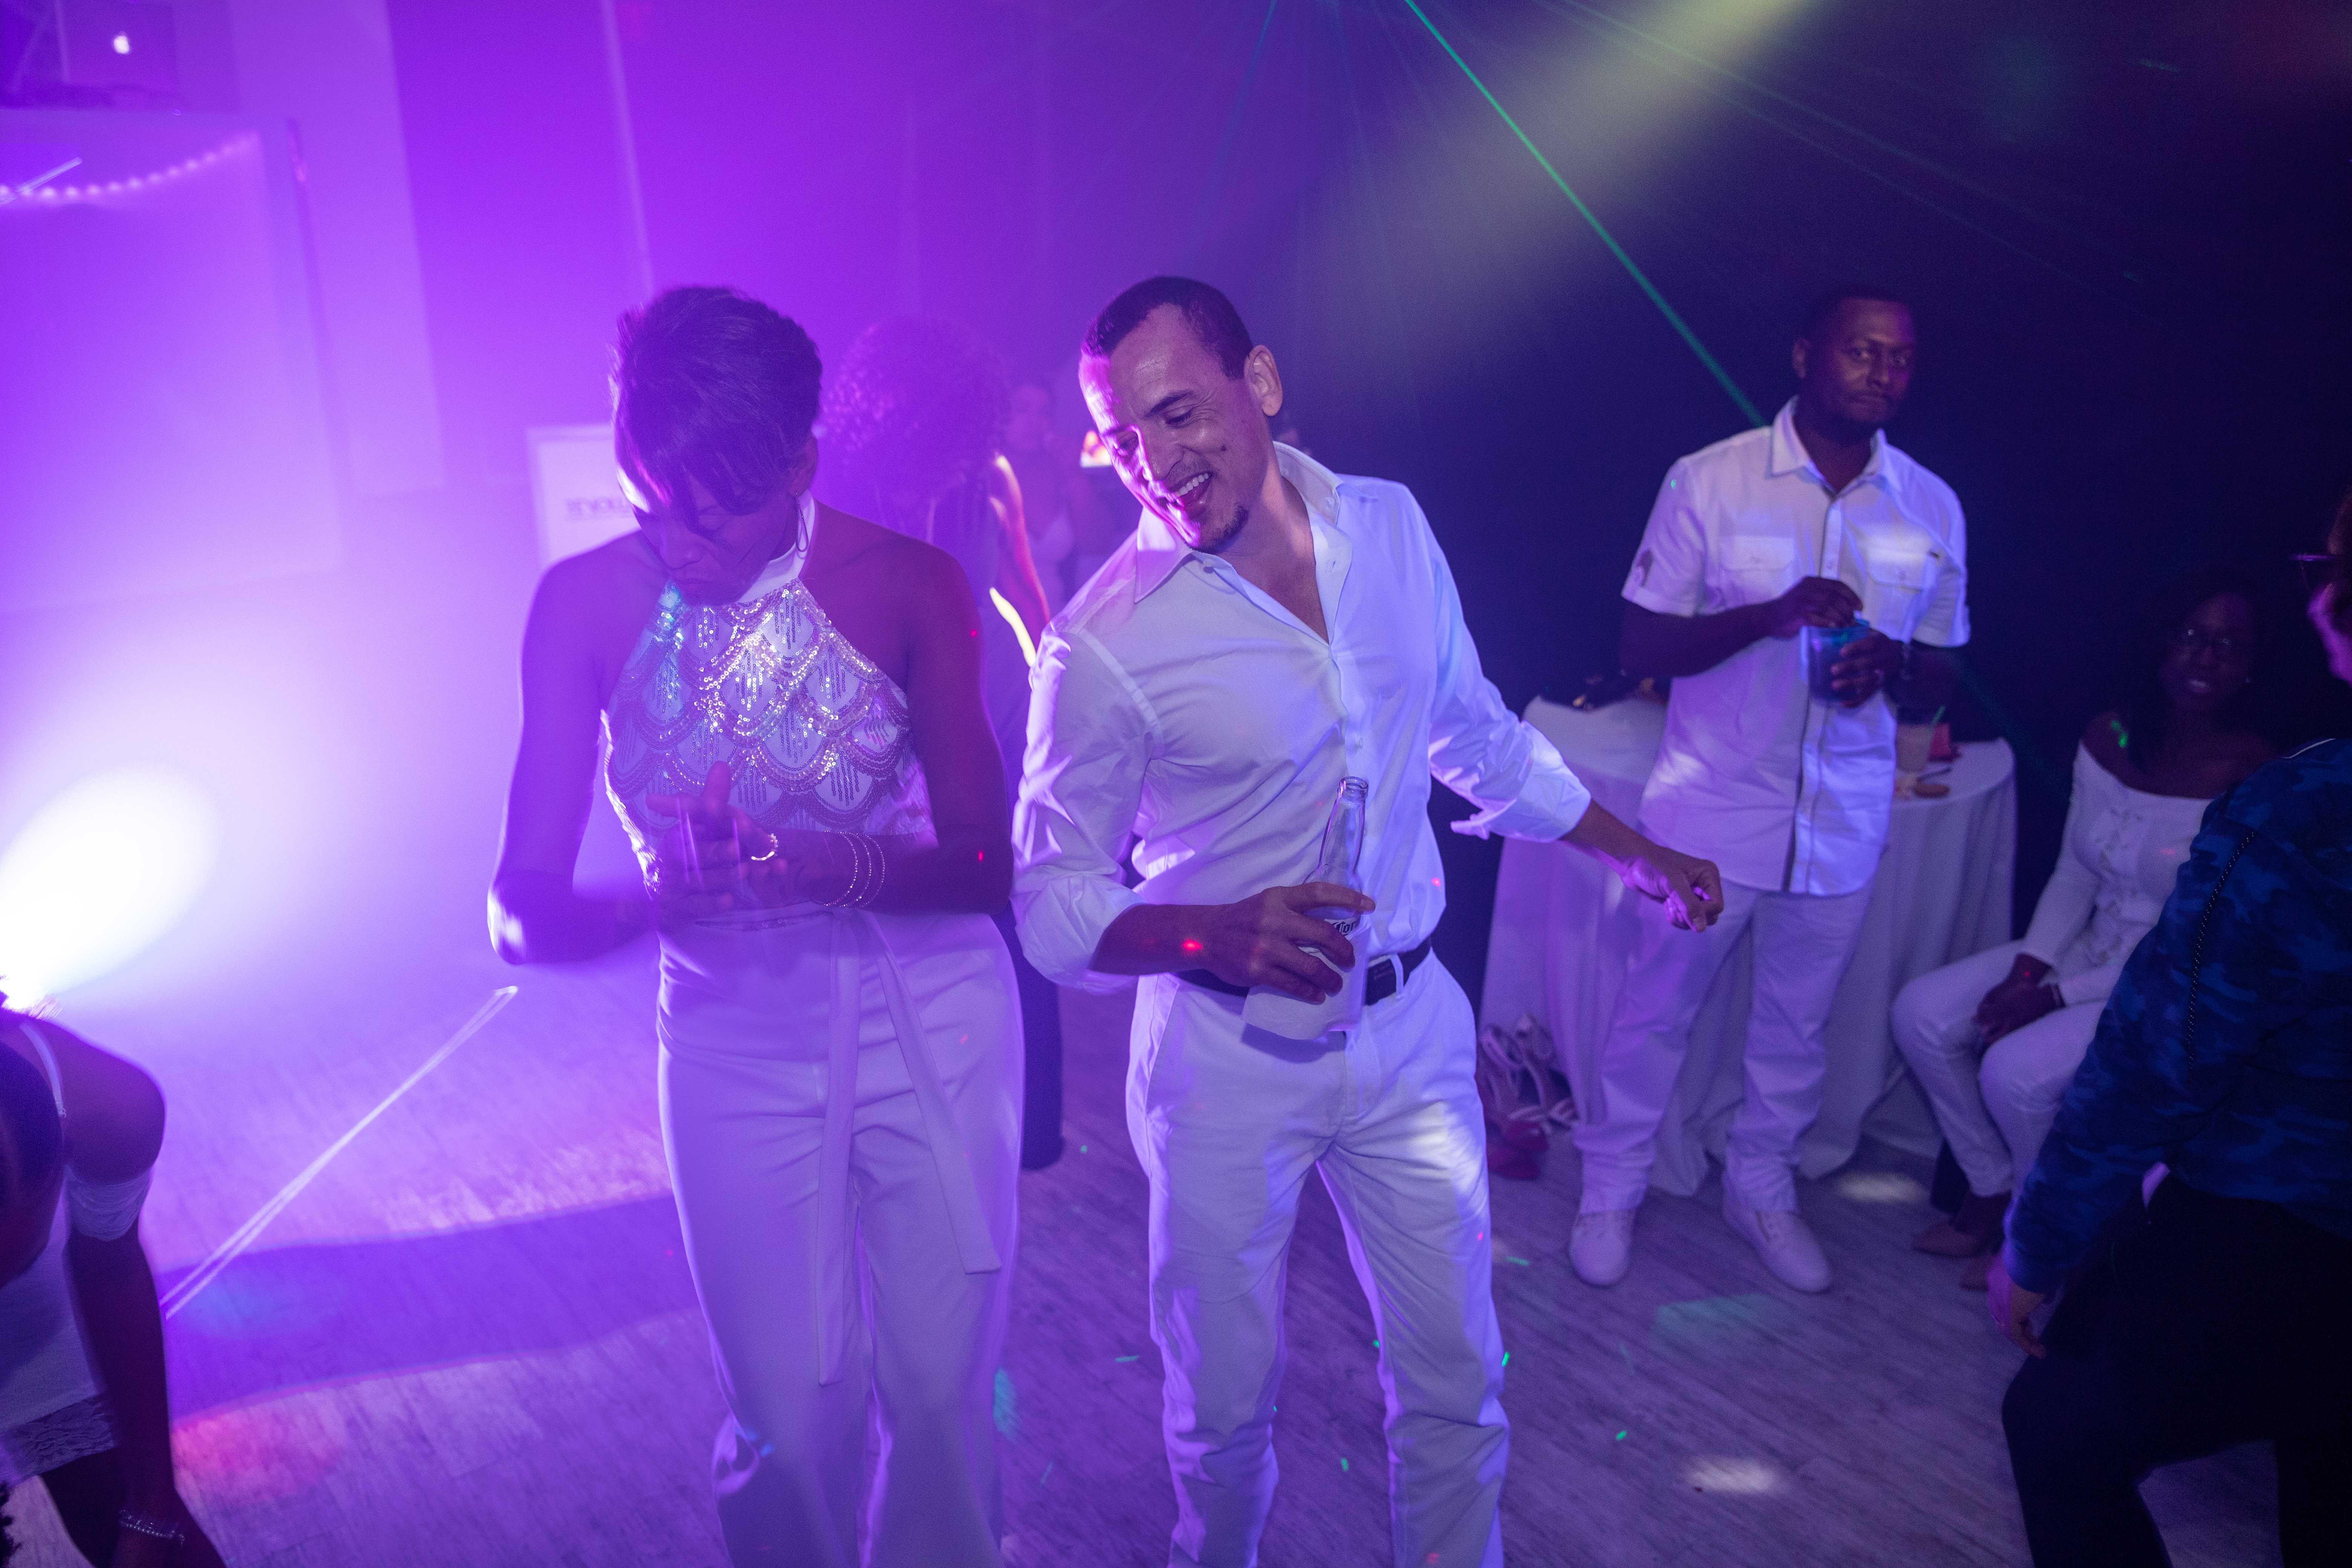 Man dancing in a partu venue with purple lights